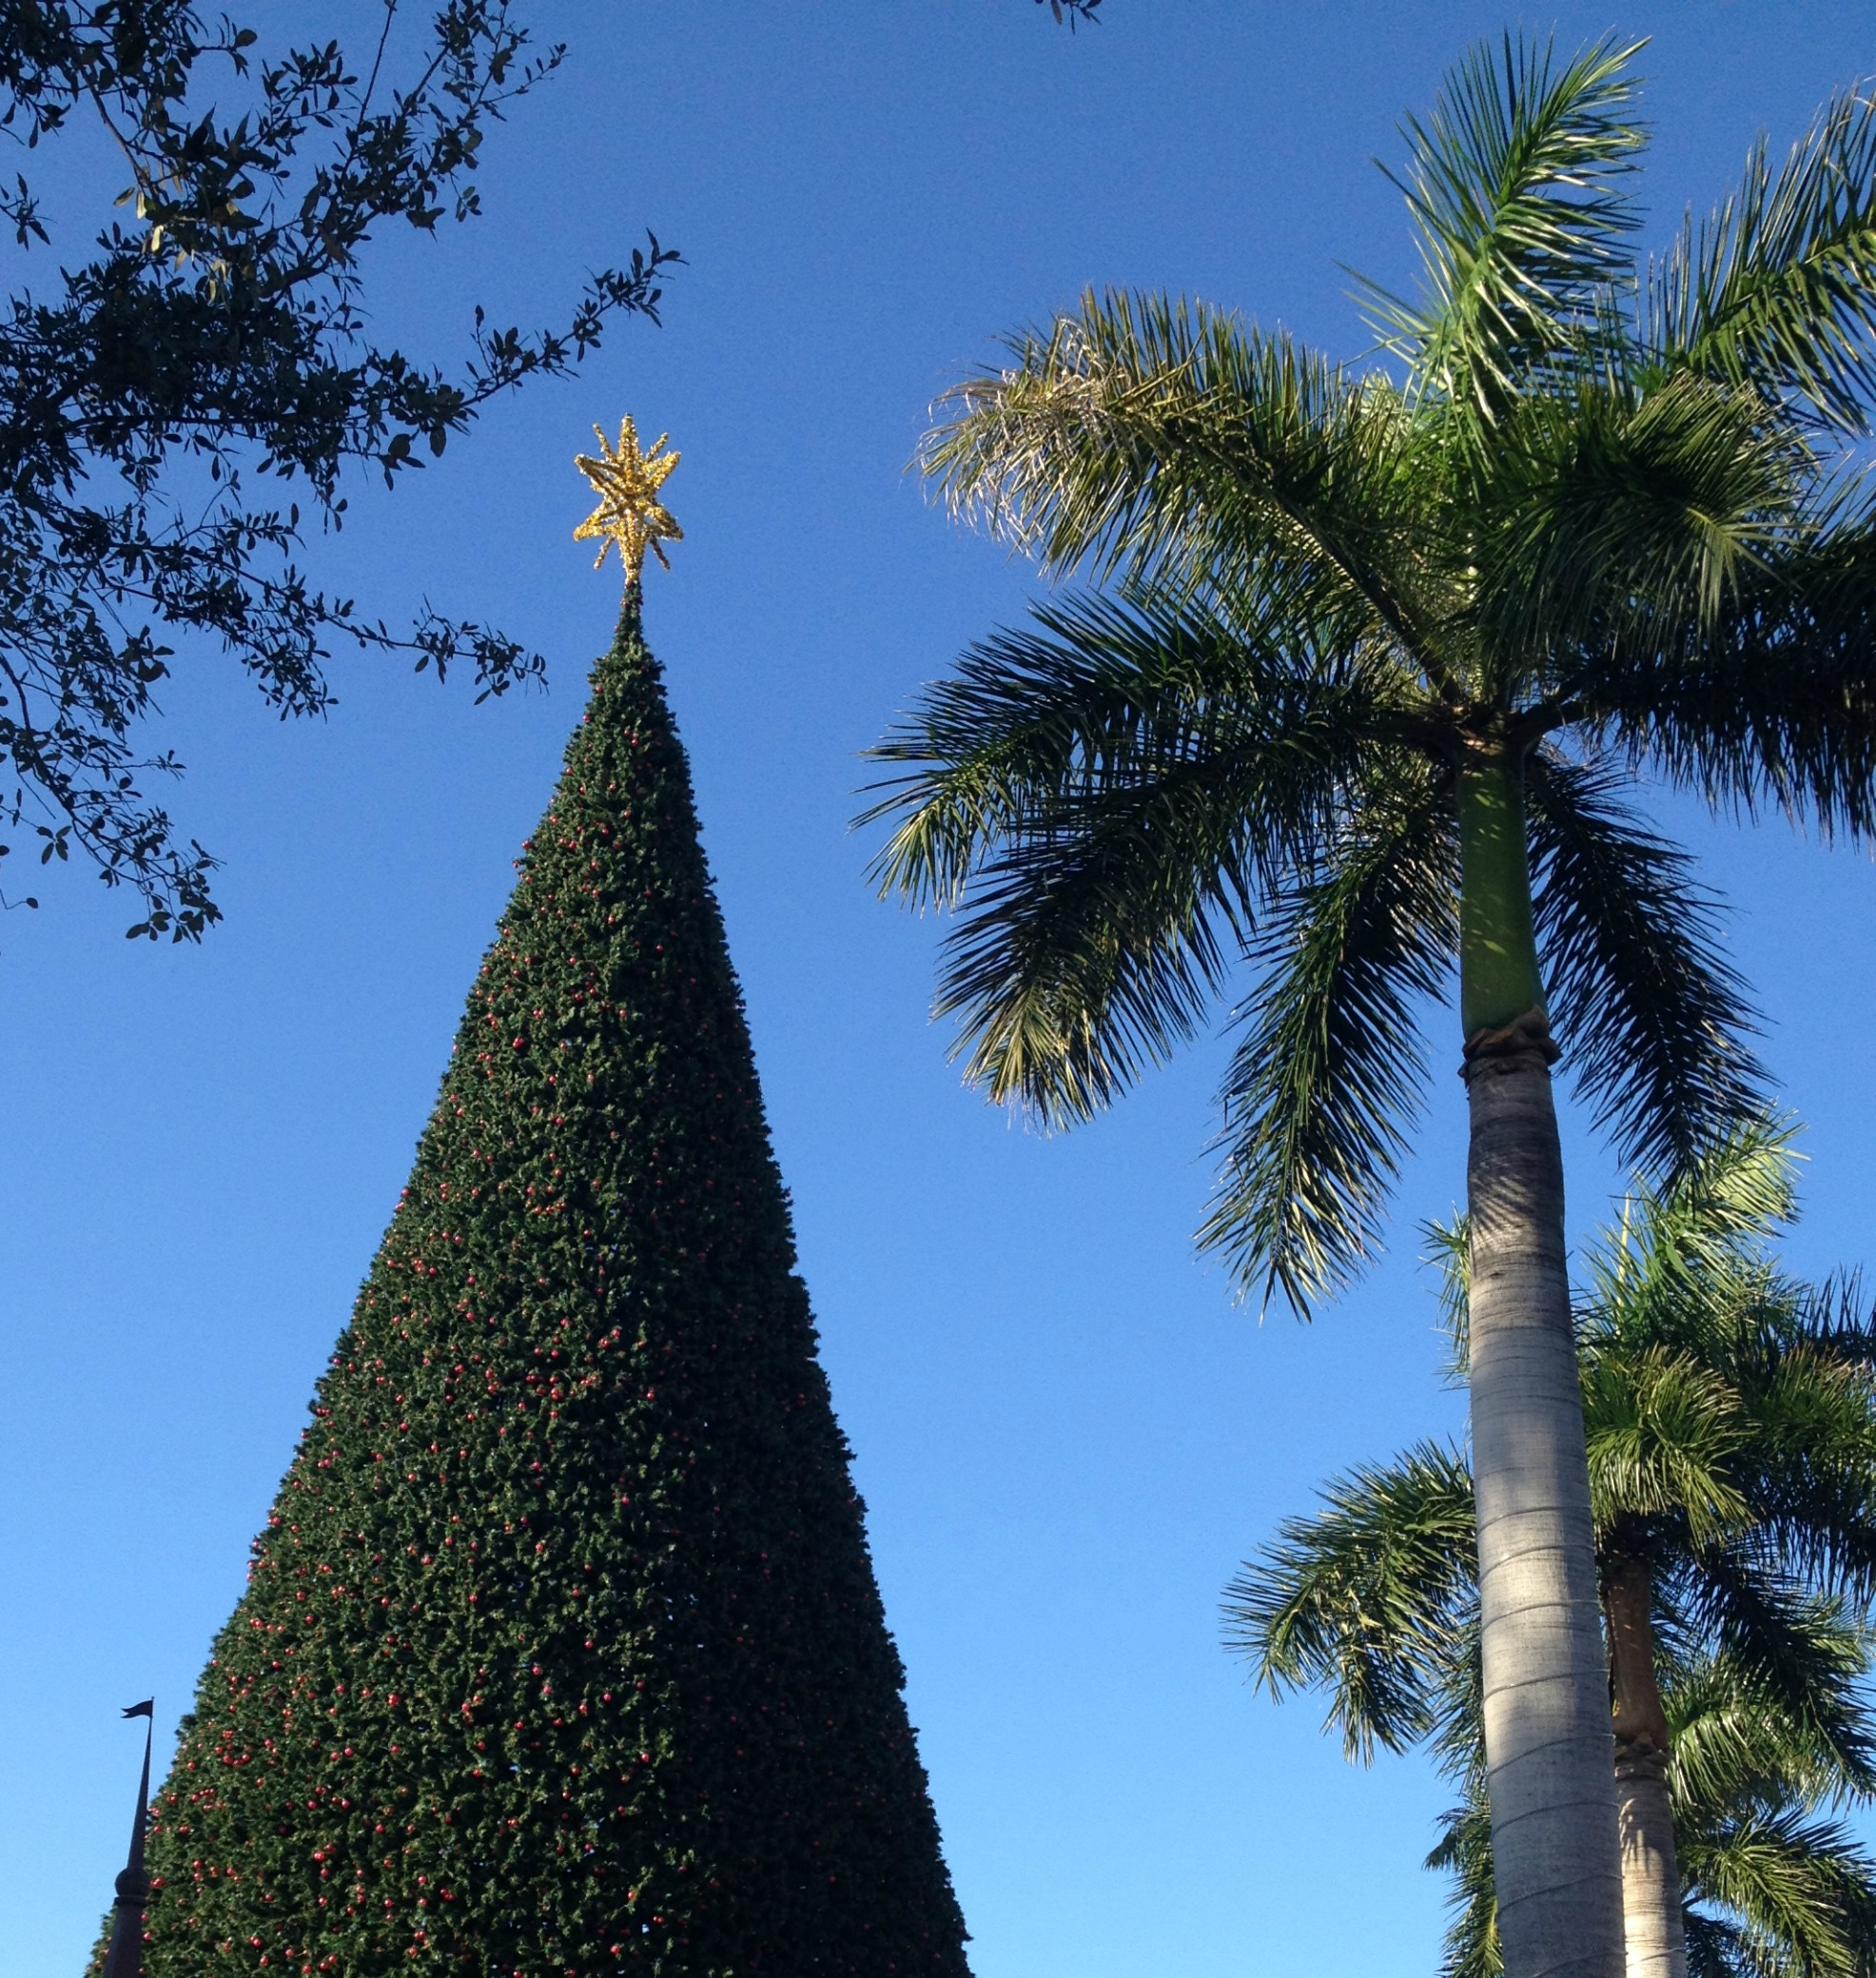 The Prettiest Christmas Tree In The World: Christmas Tree Lighting In Delray, 100-Foot Christmas Tree